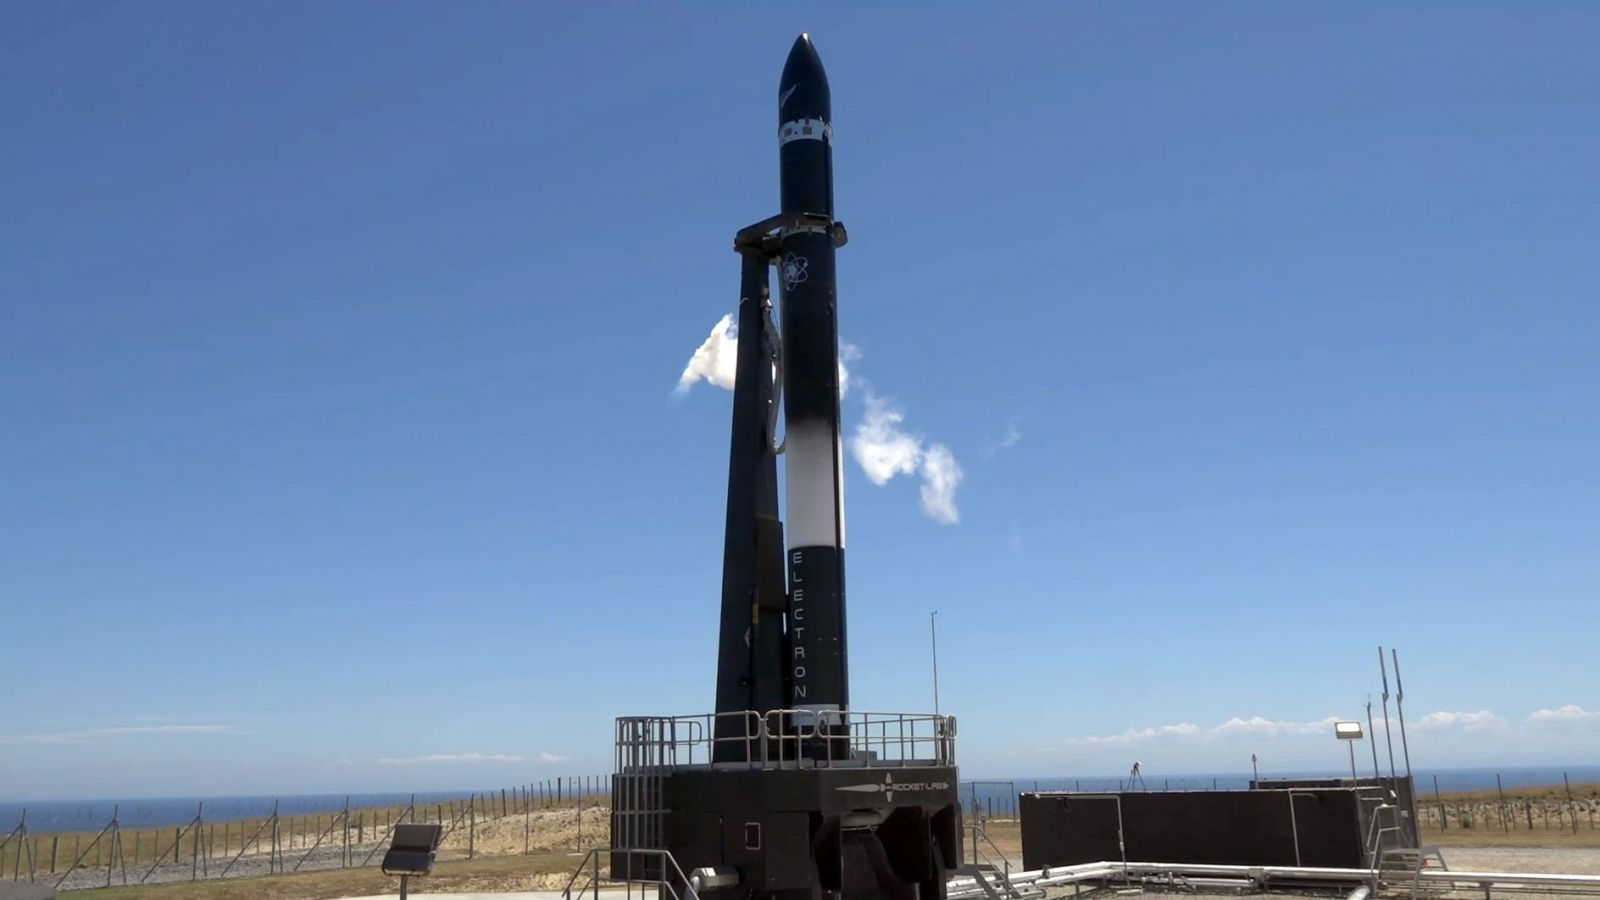 Rocket Lab's Electron rocket during the Dec. 11 launch attempt. Photo Credit: Rocket Lab